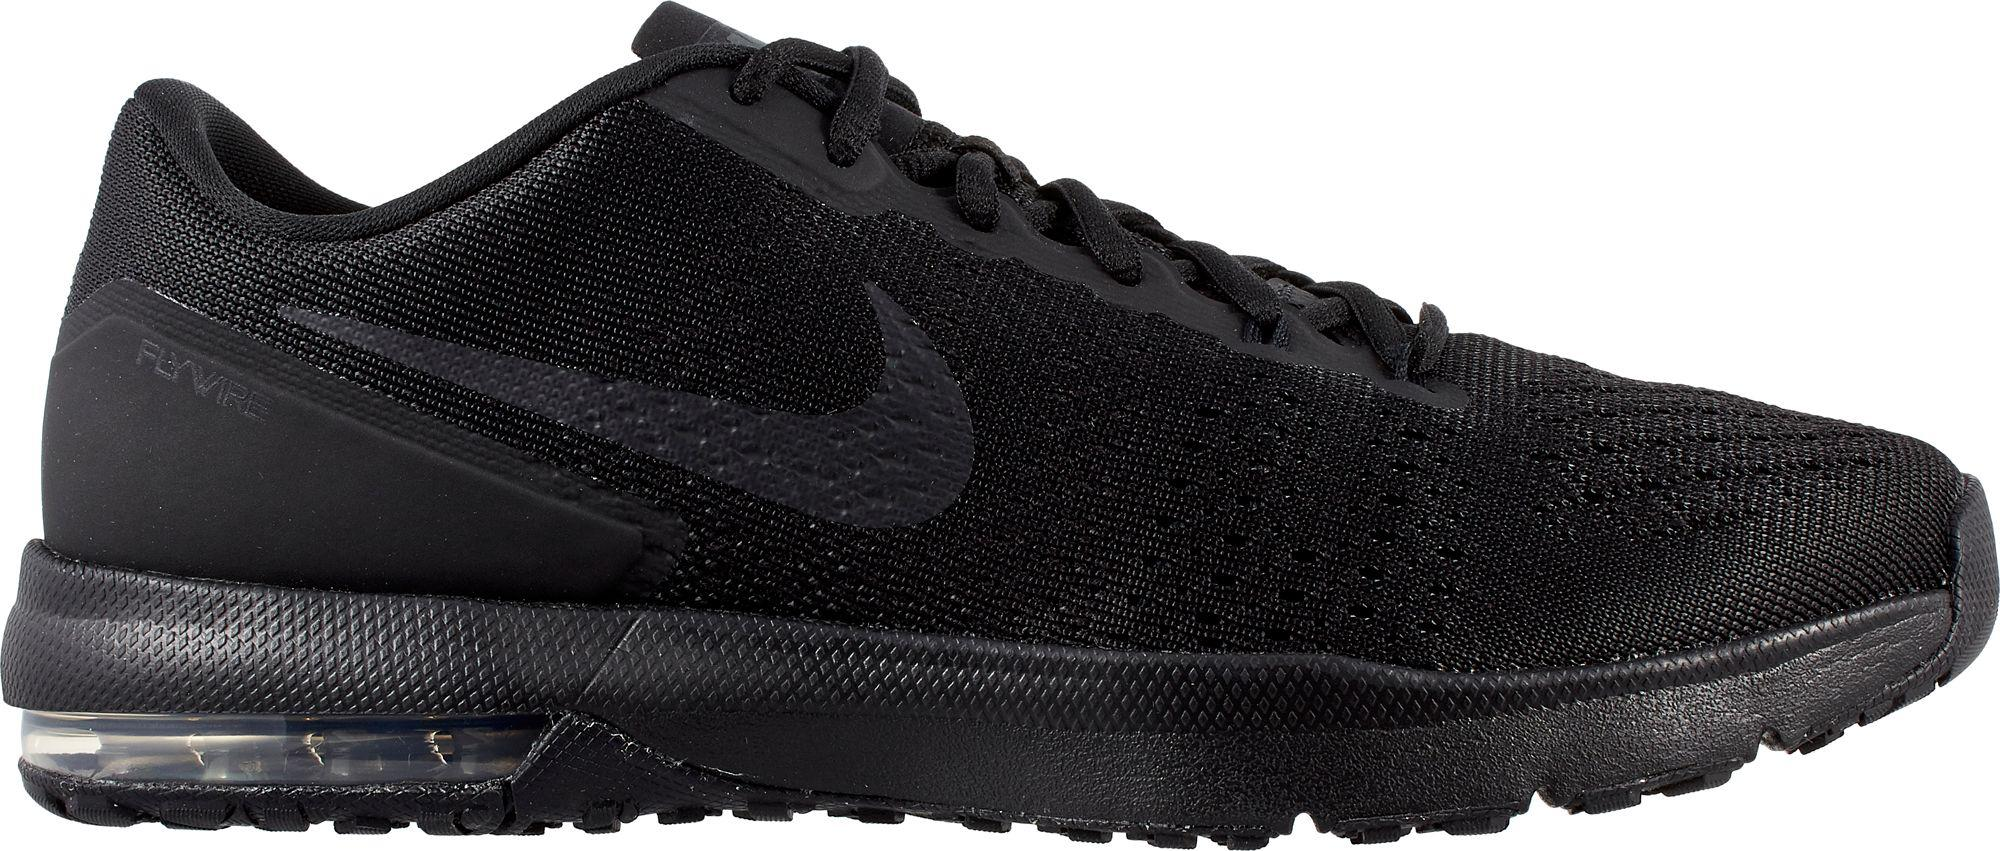 22c615535a54 Lyst - Nike Air Max Typha Training Shoes in Black for Men